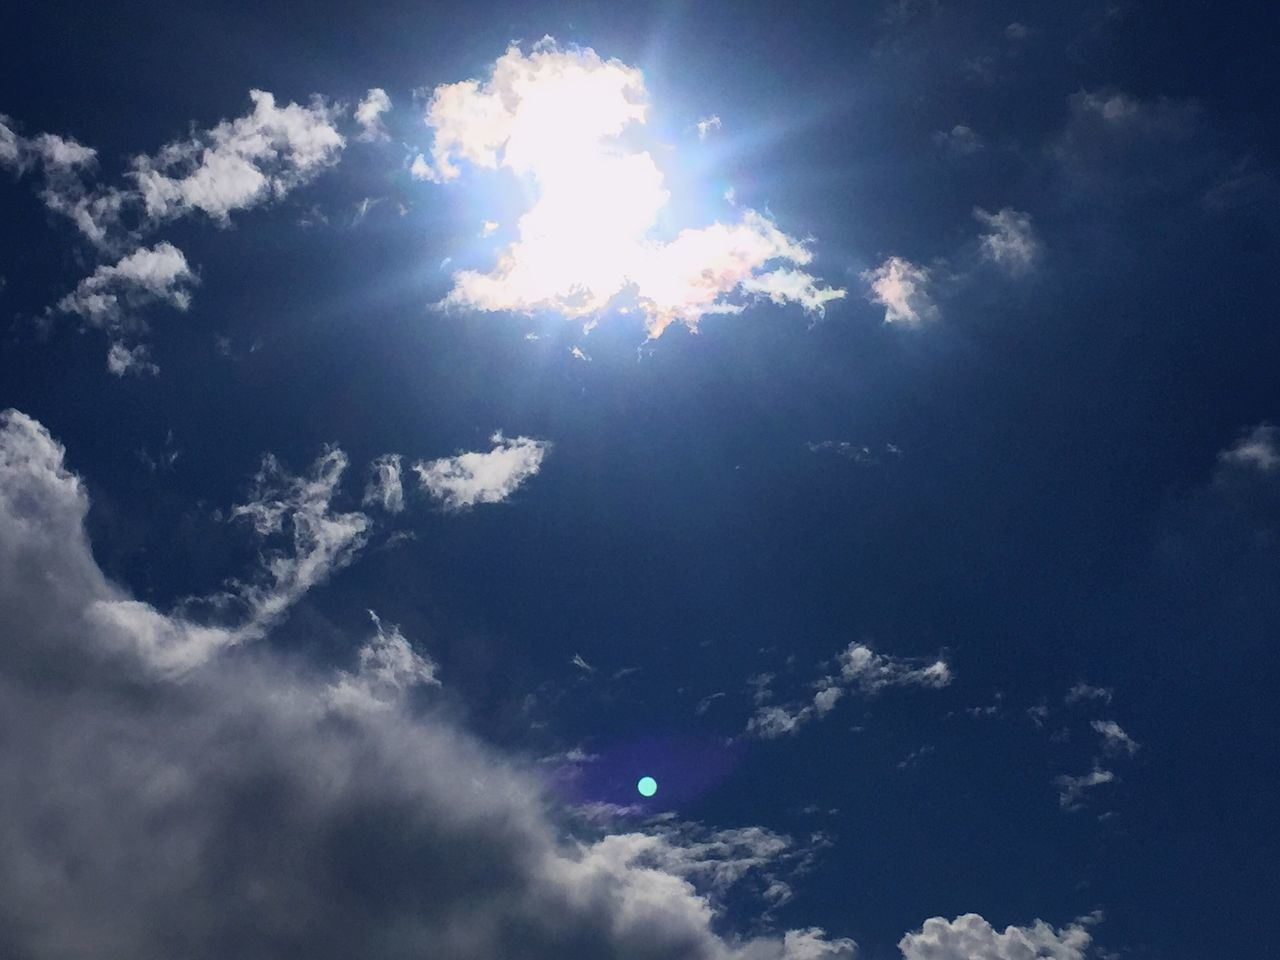 sky, cloud - sky, nature, beauty in nature, sunbeam, low angle view, scenics, sky only, sun, blue, tranquility, environment, sunlight, tranquil scene, outdoors, no people, backgrounds, ethereal, day